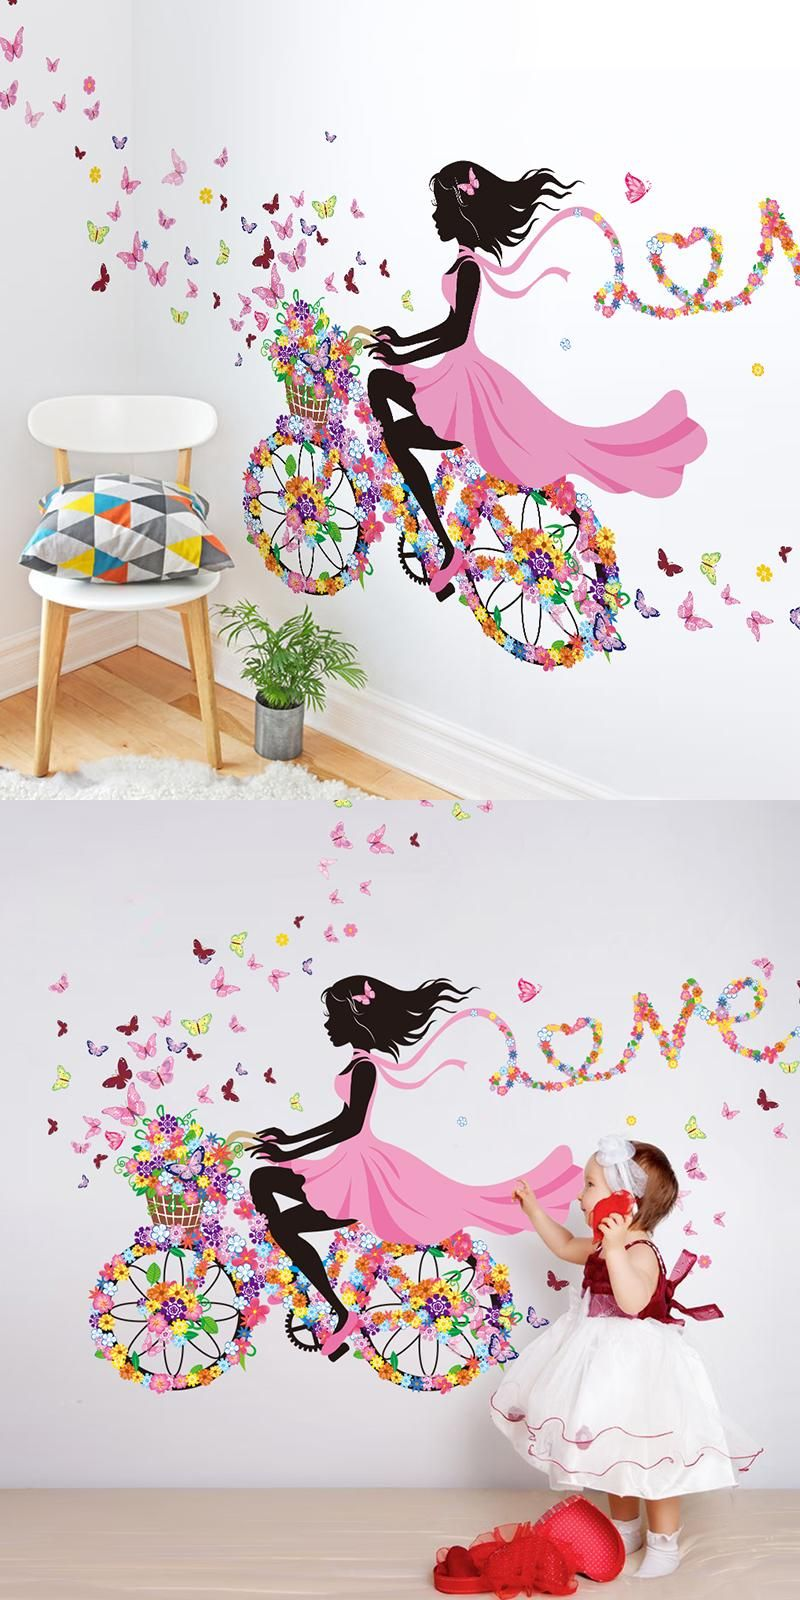 Visit to buy diy wall decor dancing girl art wall stickers for kids